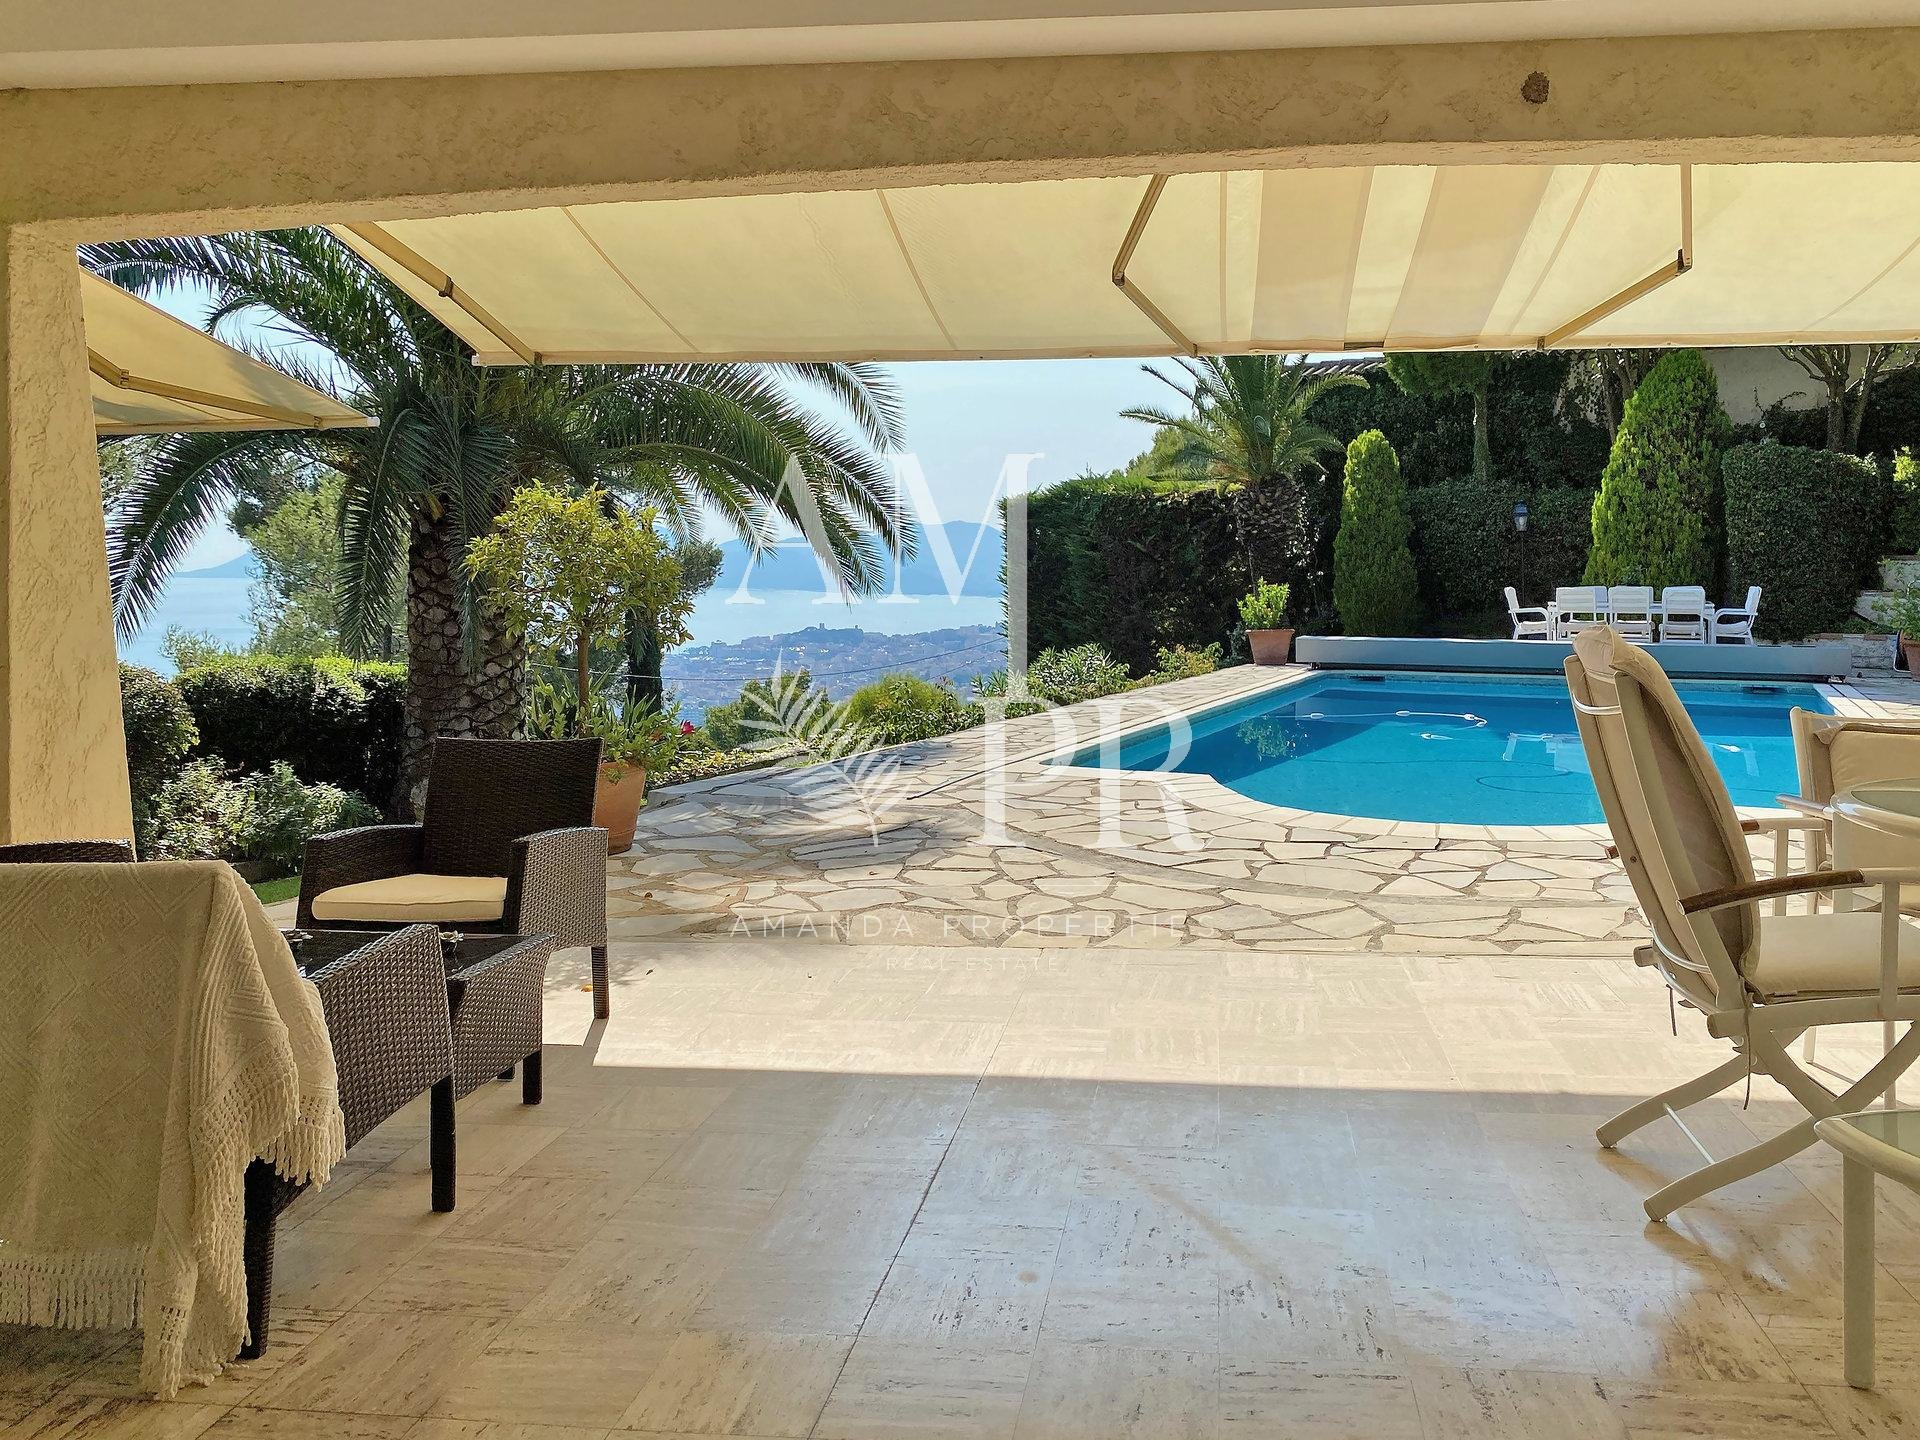 Villa - Panoramic sea view - Cannes